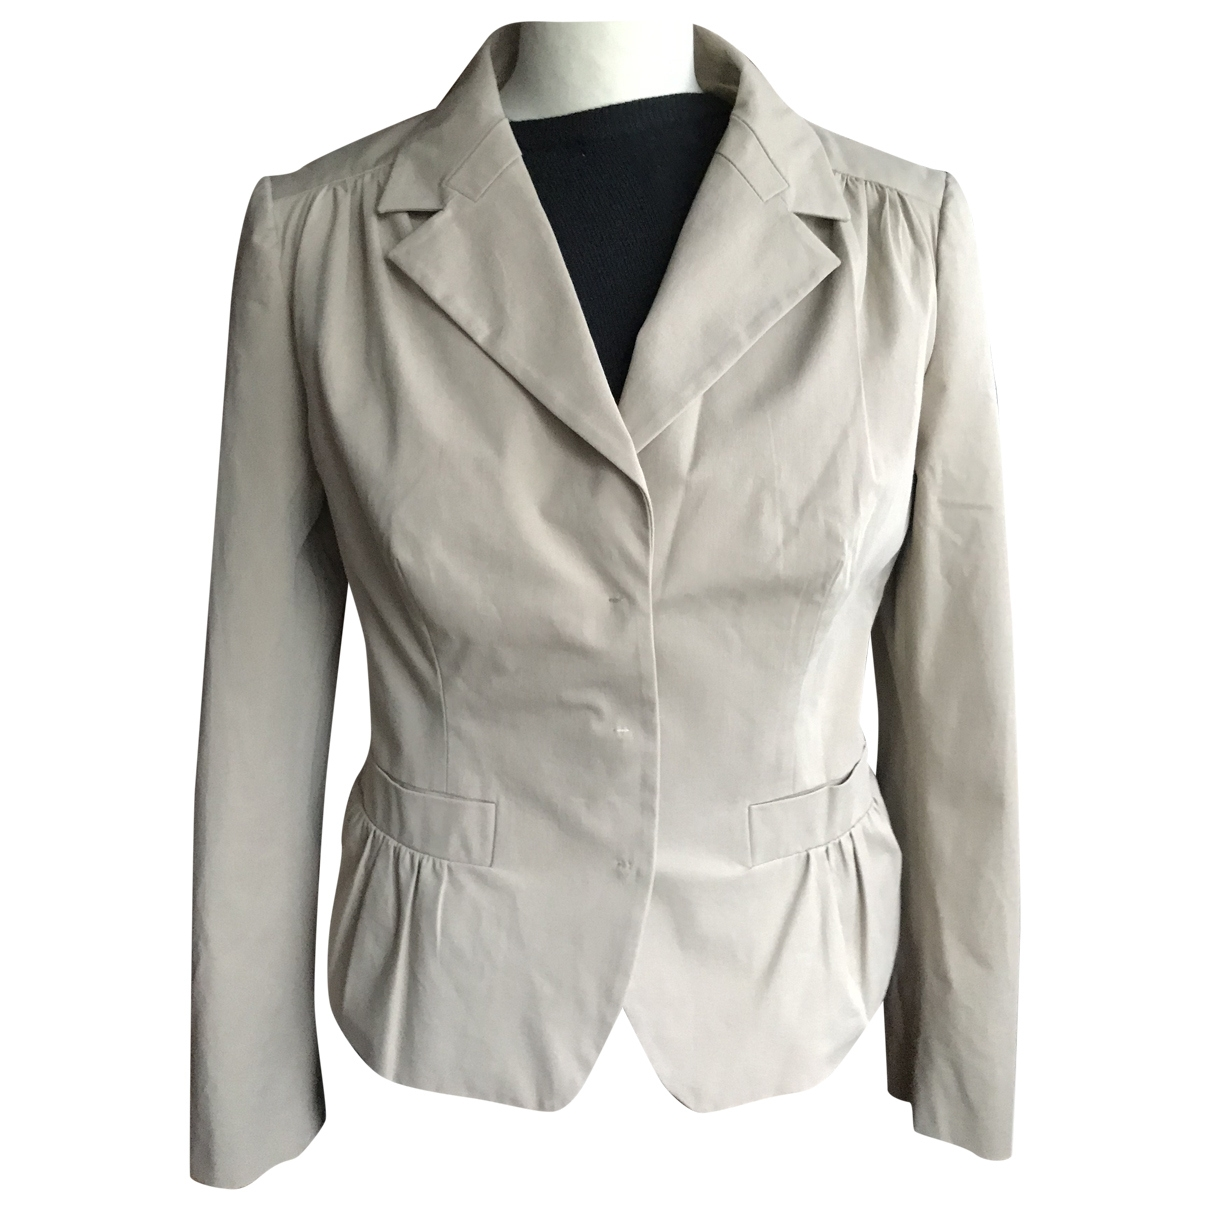 Prada \N Beige Cotton jacket for Women 46 IT